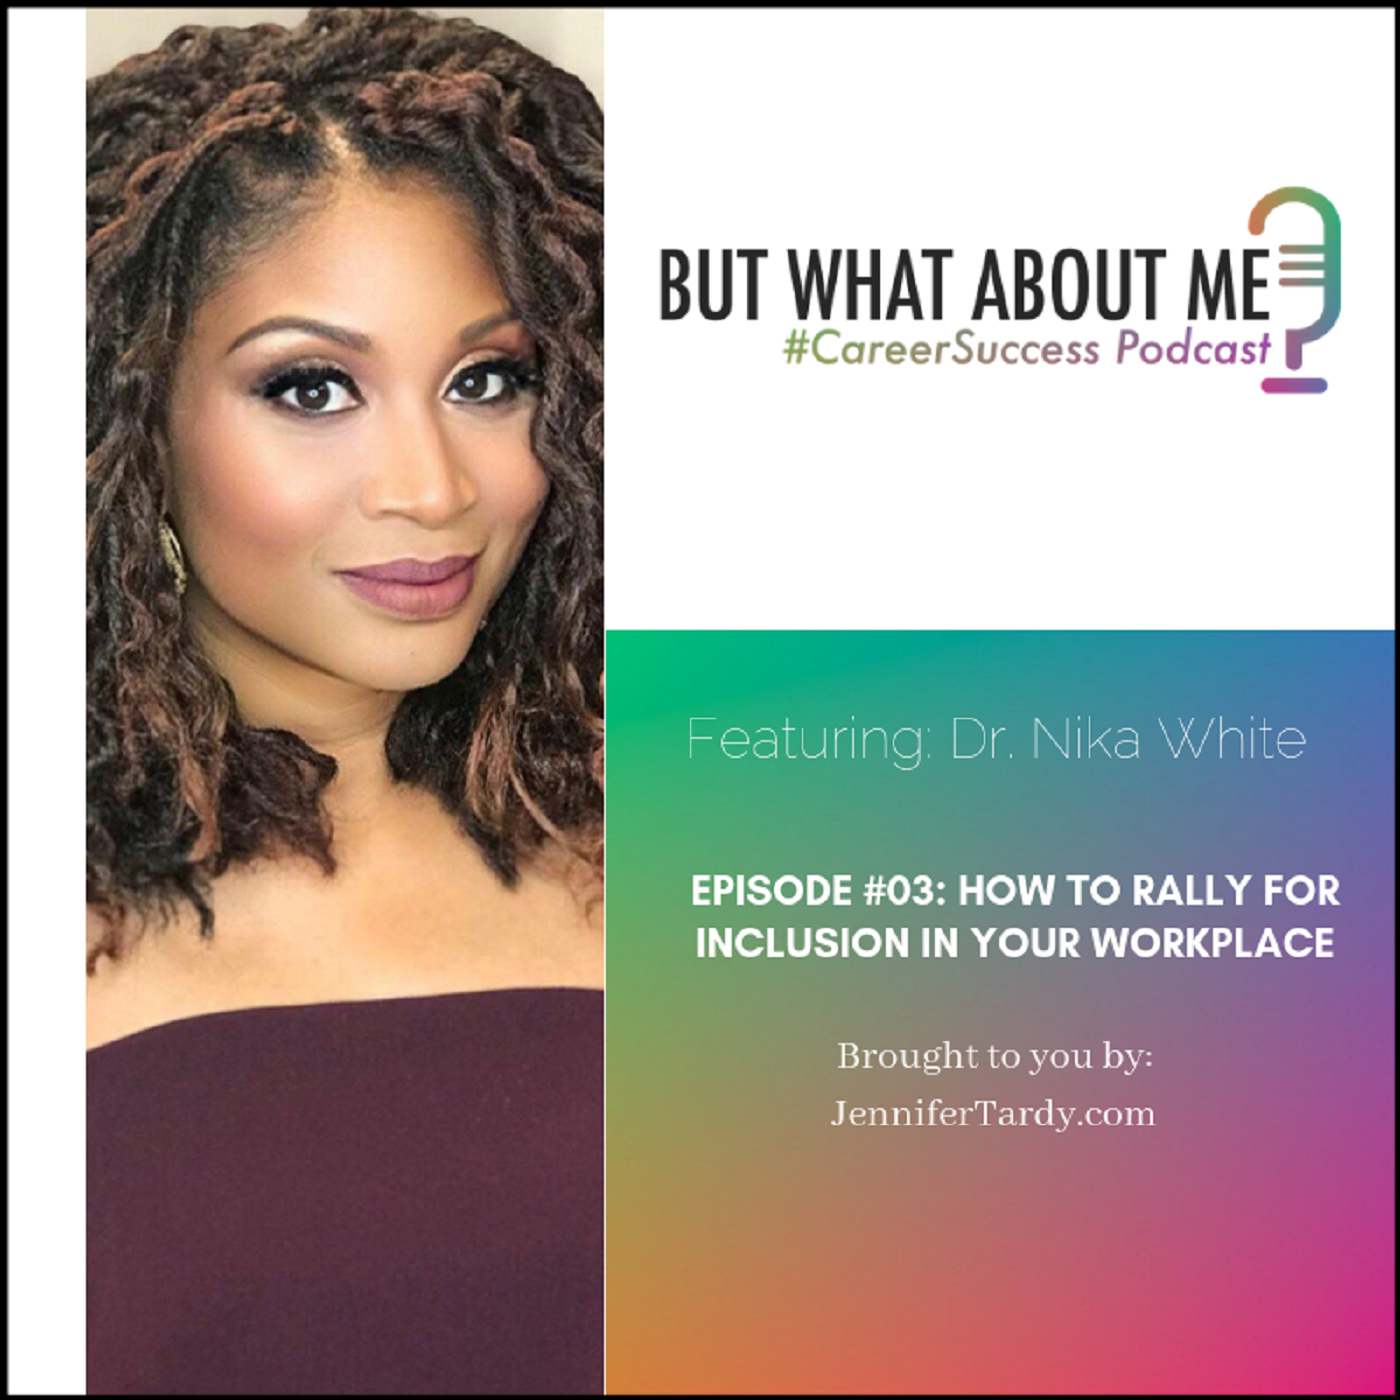 Episode 03: How to Rally for Inclusion in Your Workplace